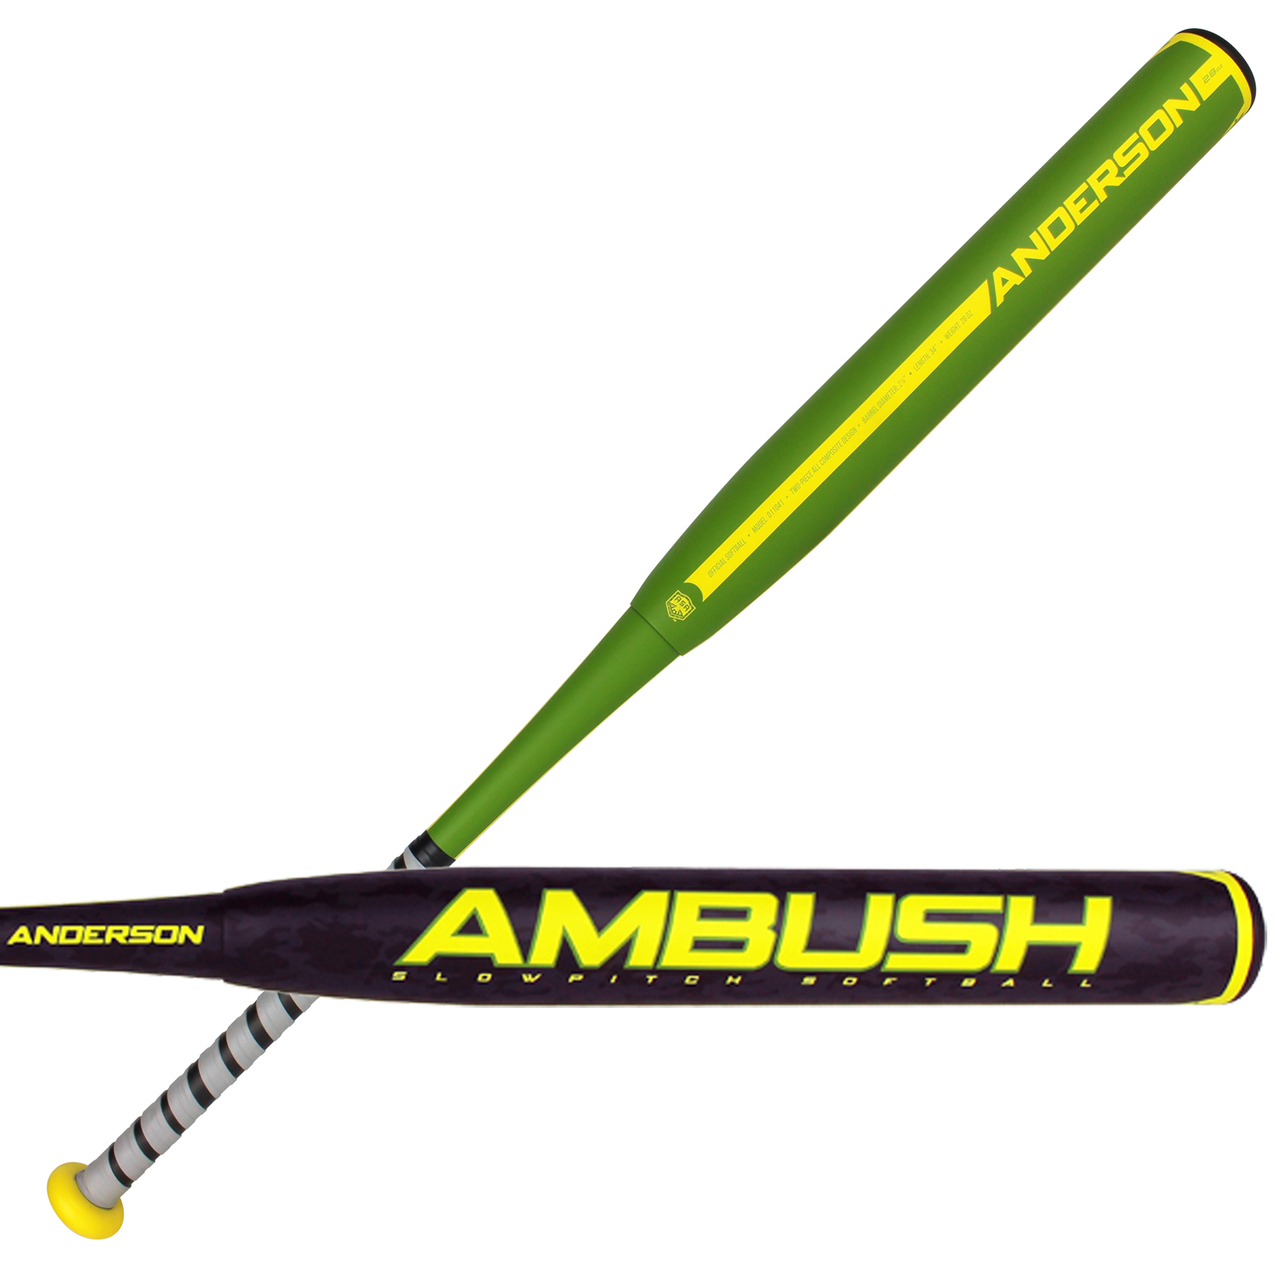 anderson-bat-company-ambush-asa-slow-pitch-softball-bat-34-inch-28-oz 110413428 Anderson 874147007747 The 2017 <strong>Ambush Slow Pitch</strong> two piece composite bat is made